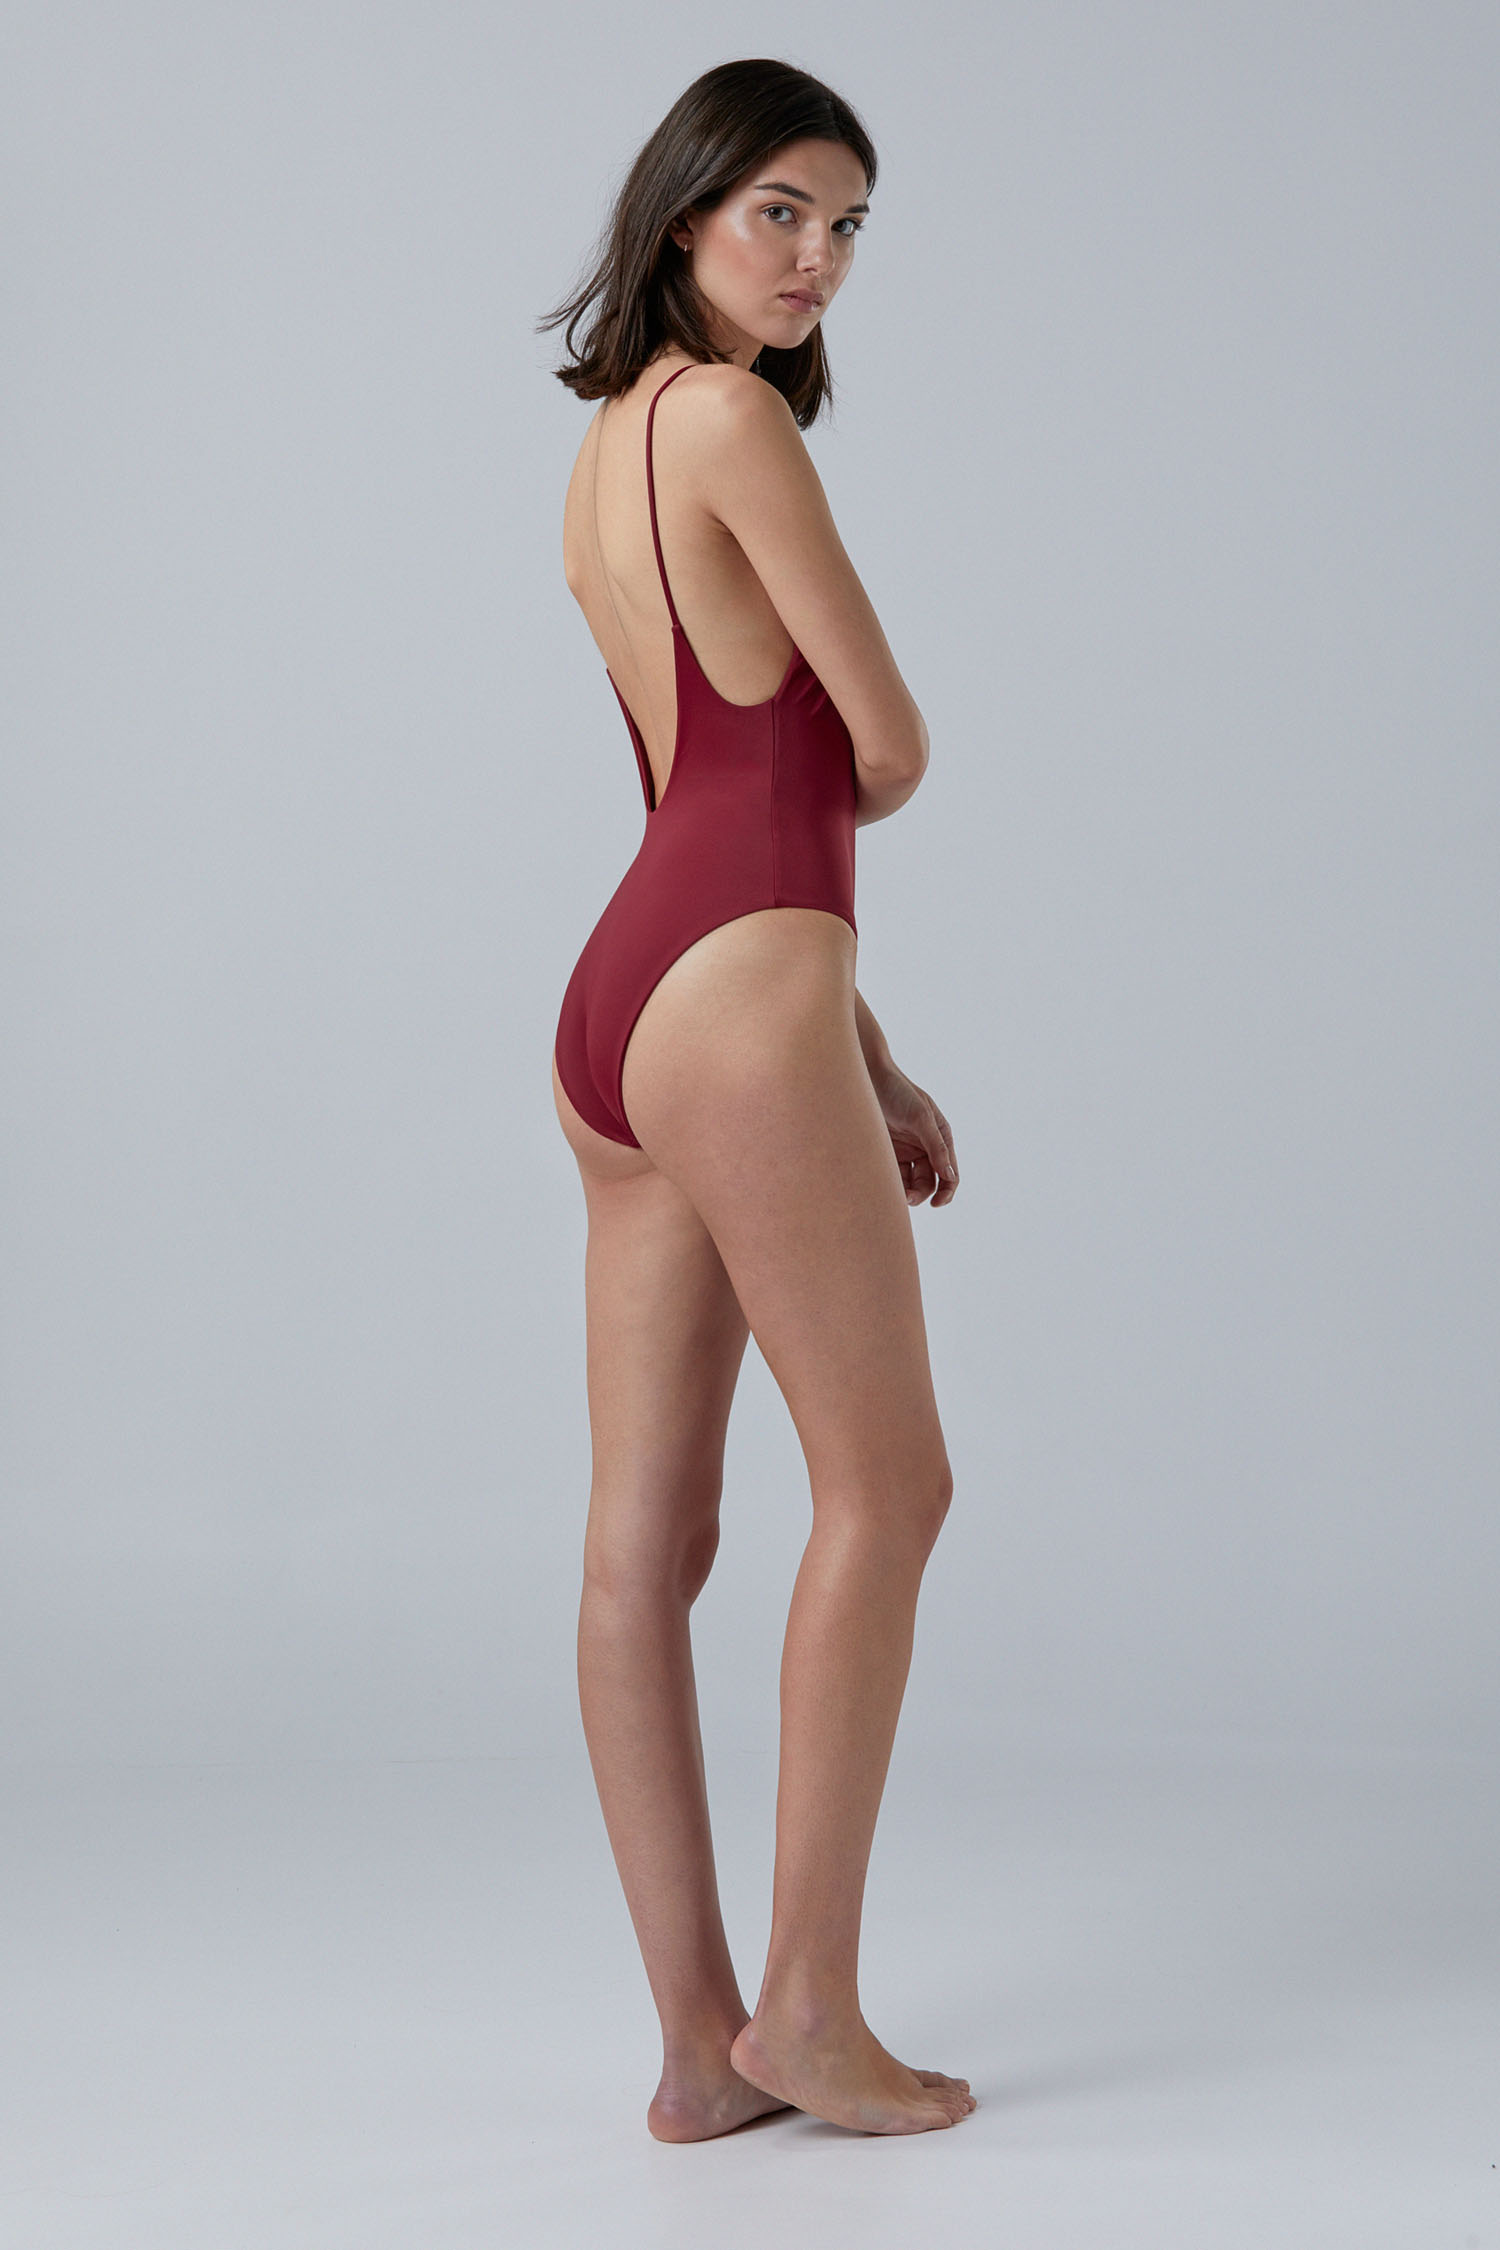 ALONA Porto onepiece, NOW_THEN eco swimwear / bañador ecológico